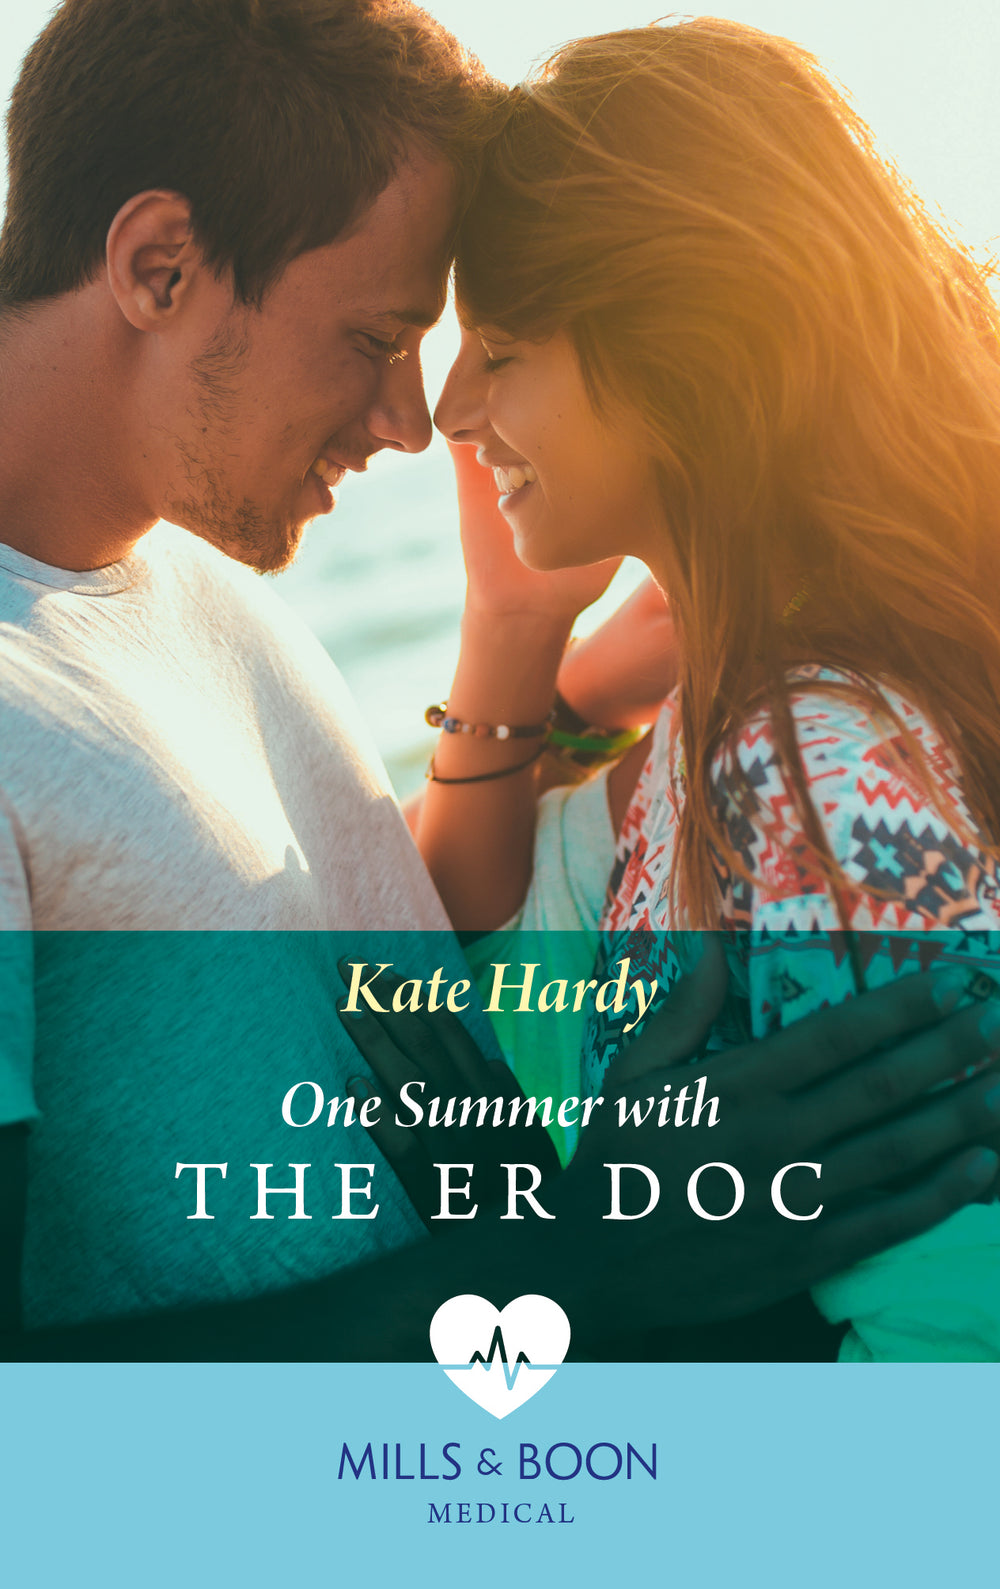 One Summer with the ER Doc